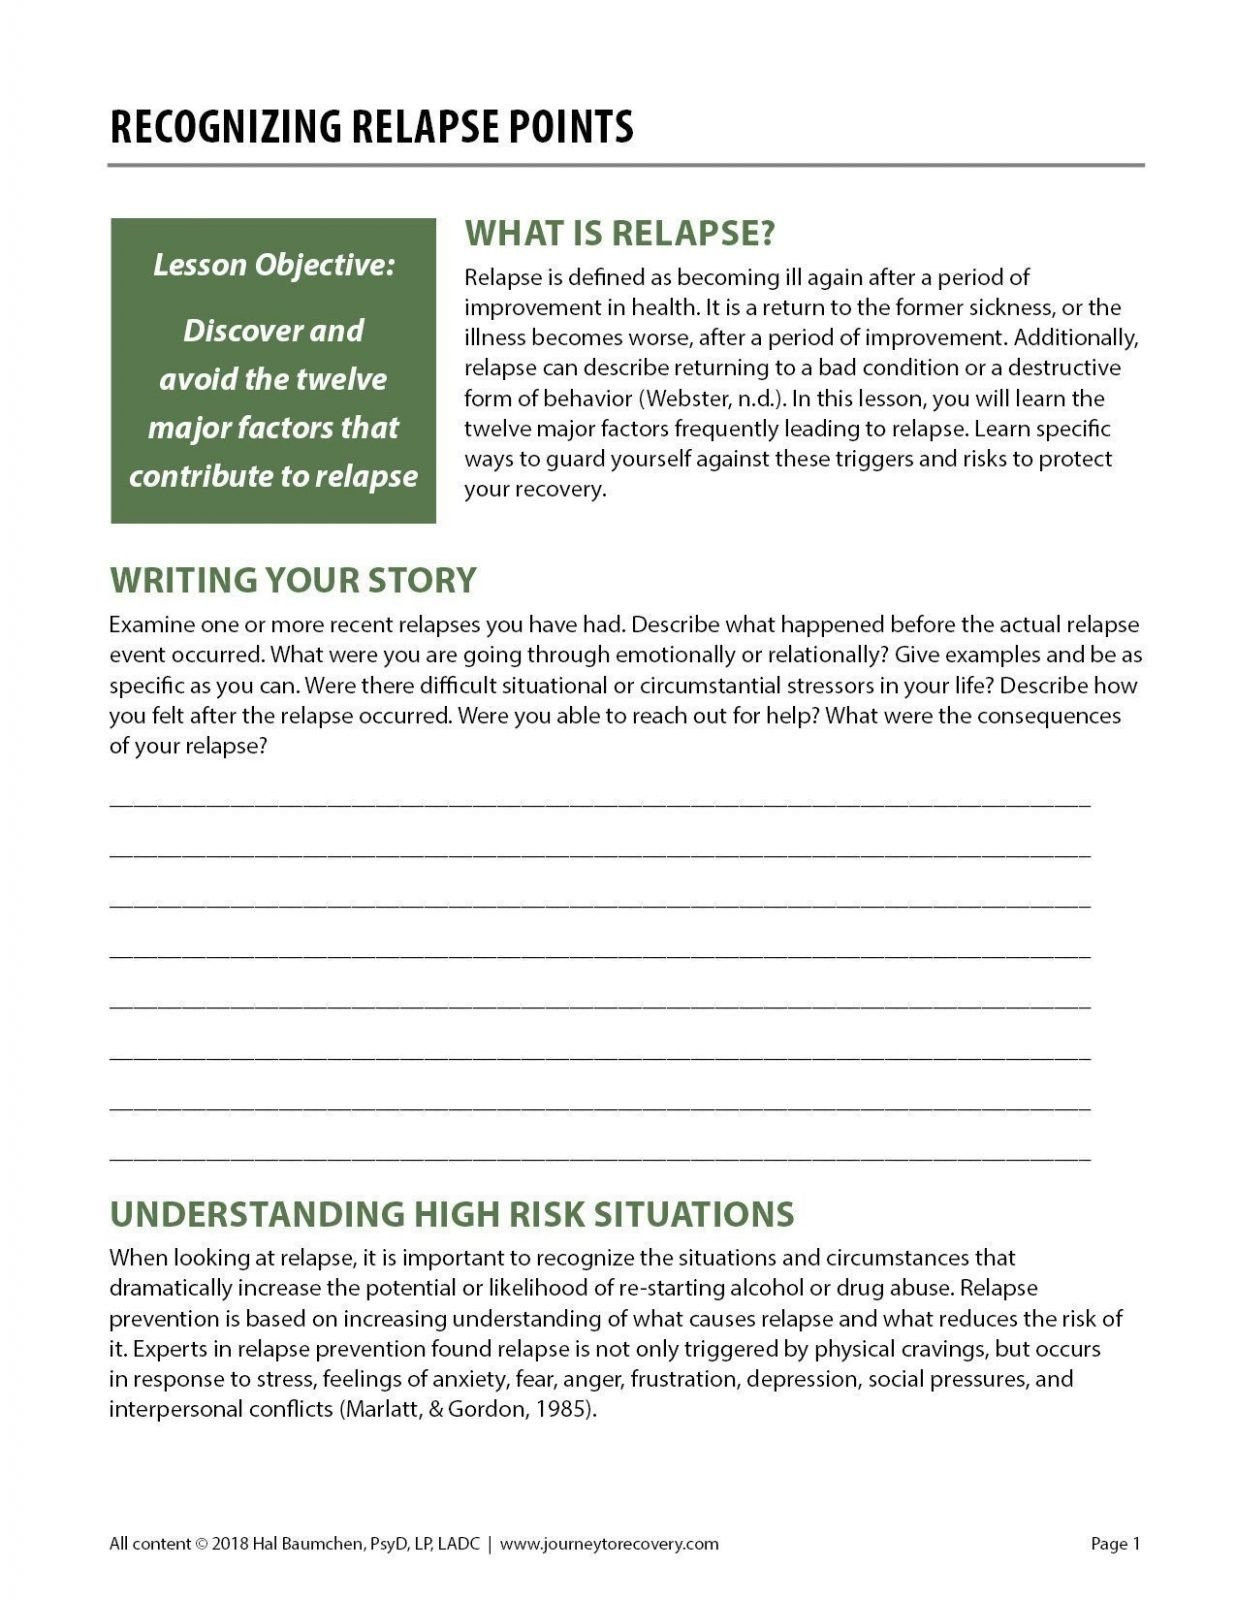 6th Grade Summarizing Worksheets Recognizing Relapse Points Cod Worksheet Journey to Recovery